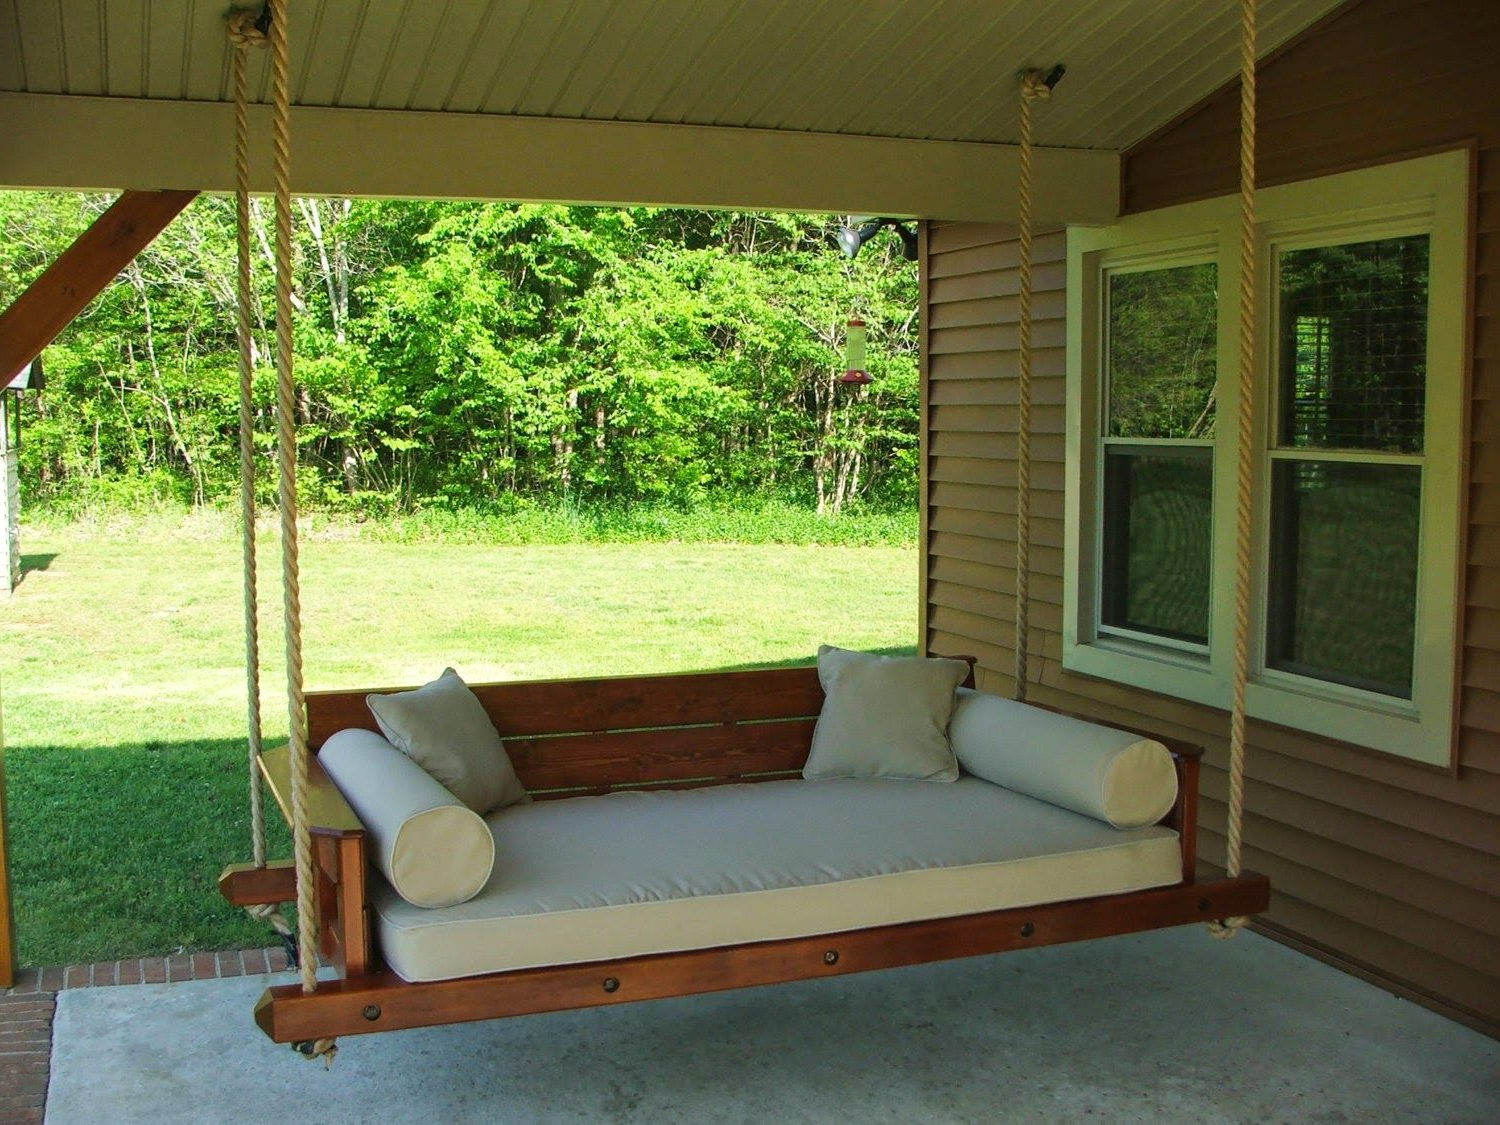 Outdoor Swing Bed Plans (View 25 of 30)